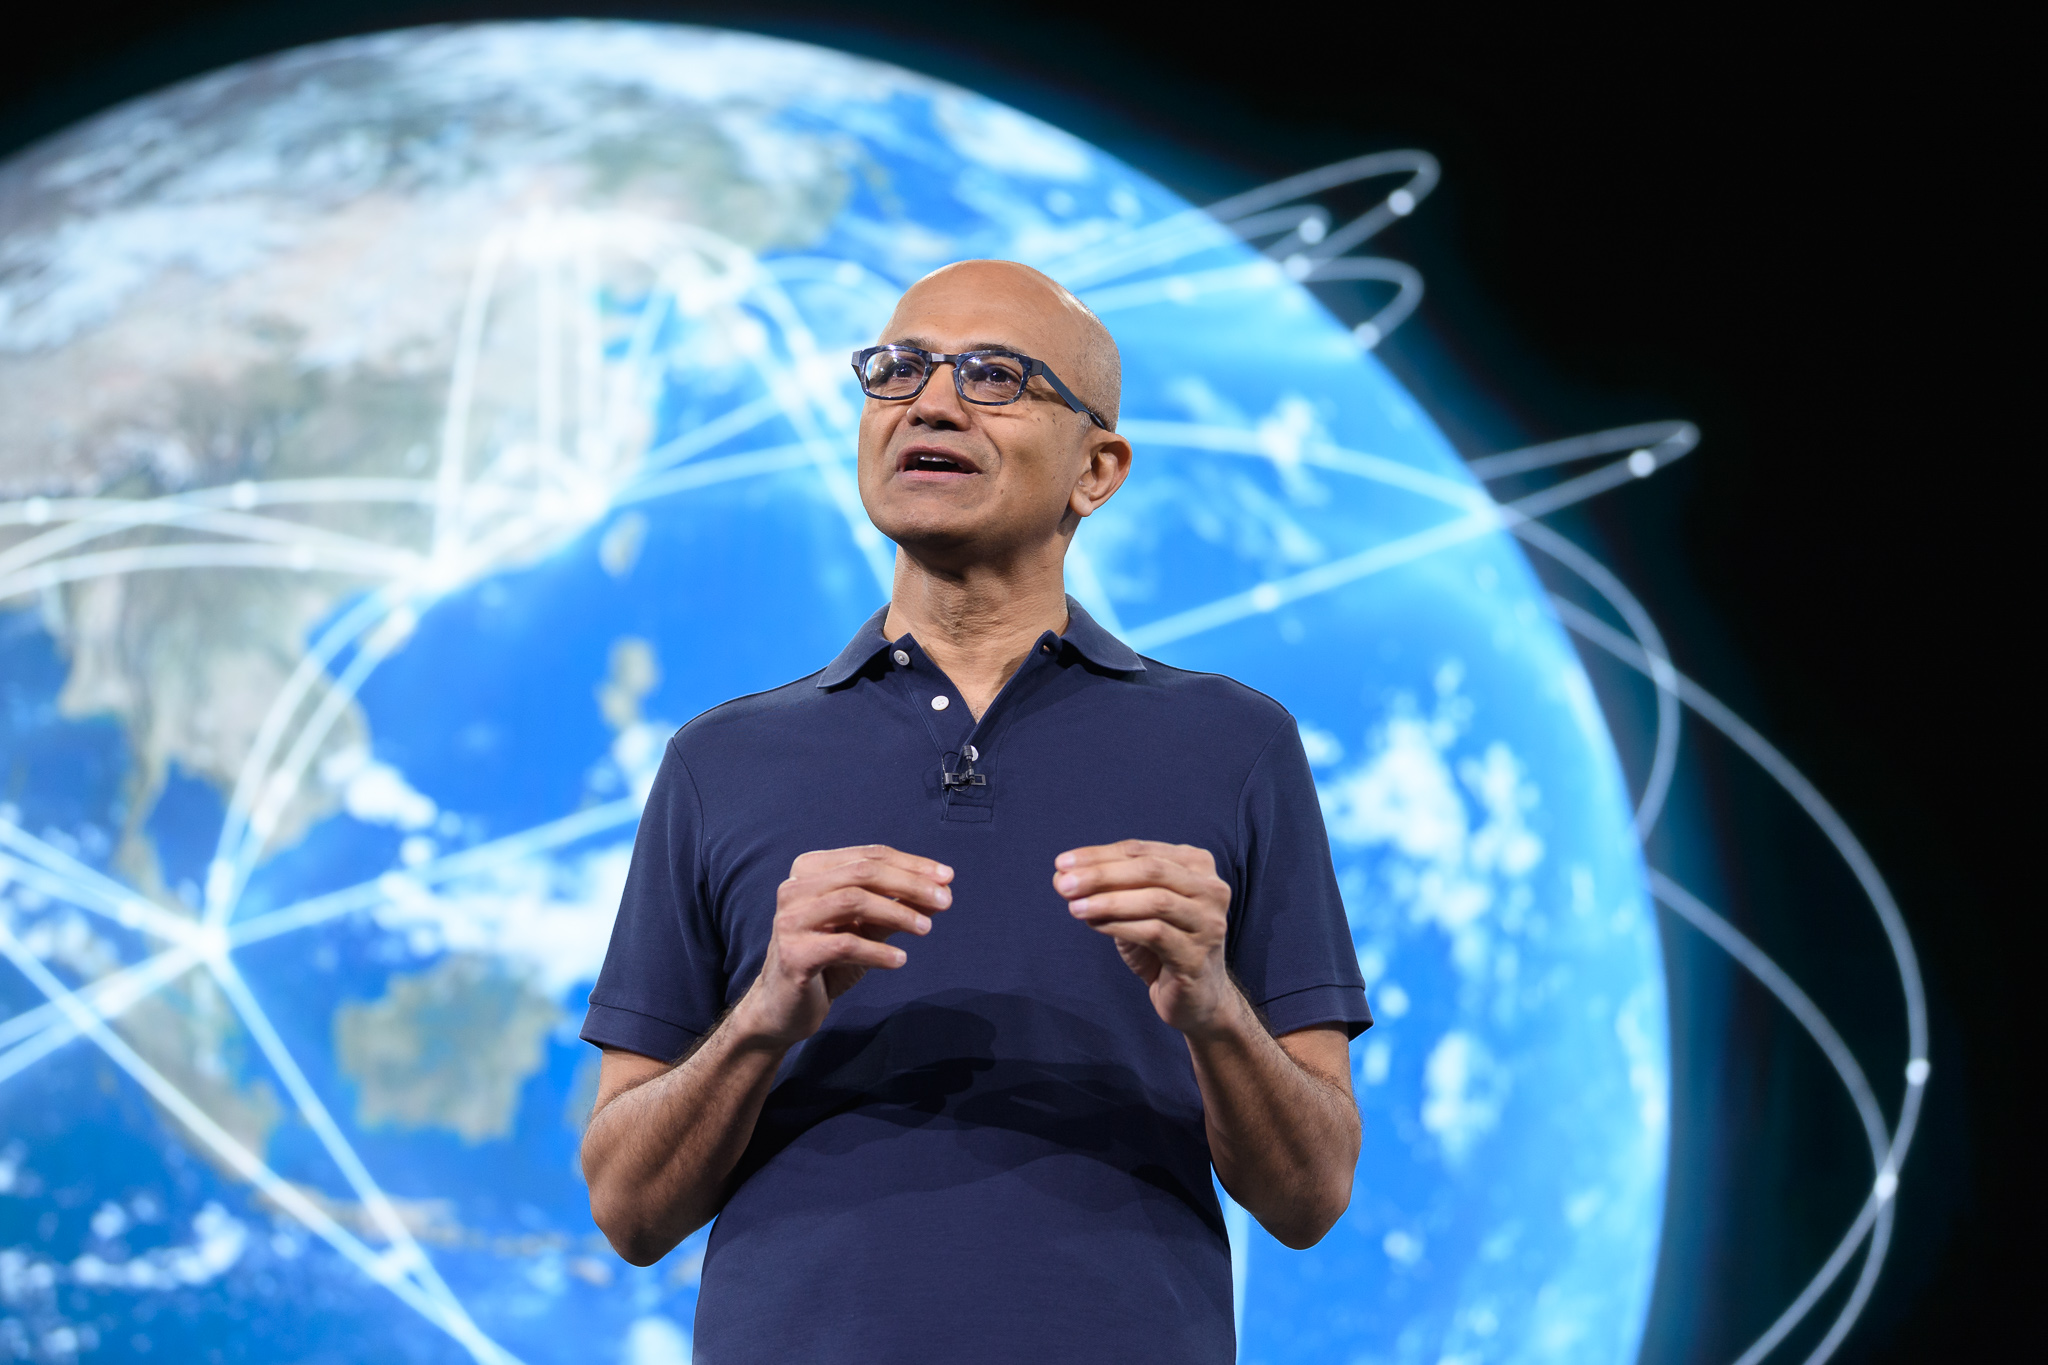 Microsoft CEO Satya Nadella warns about the consequences of embracing remote work permanently